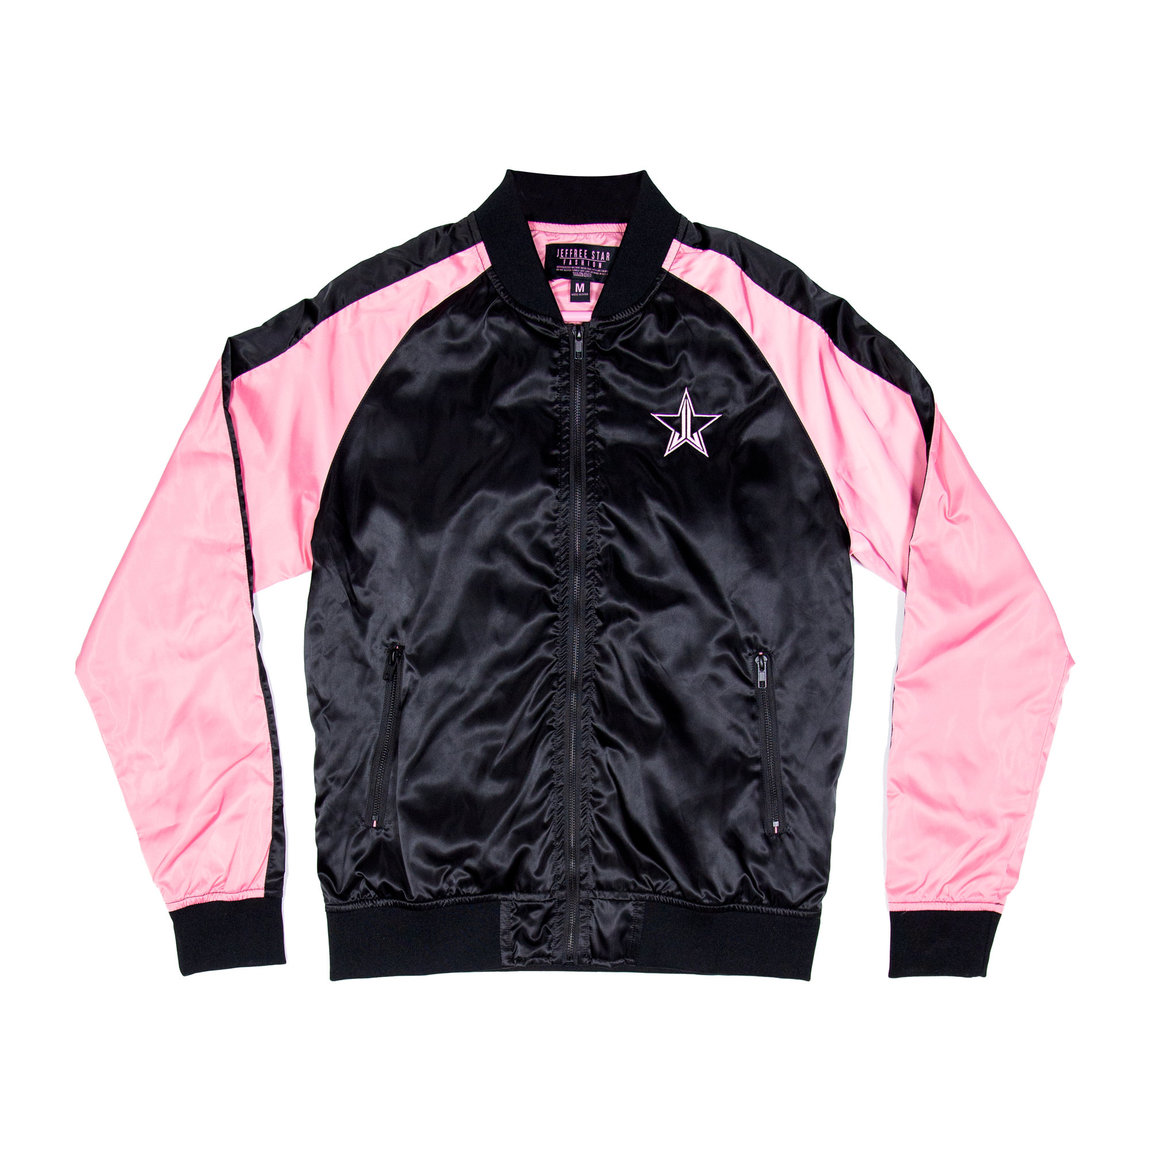 Jeffree Star Cosmetics Baby Pink Bomber Jacket Small alternative view 1 - product swatch.